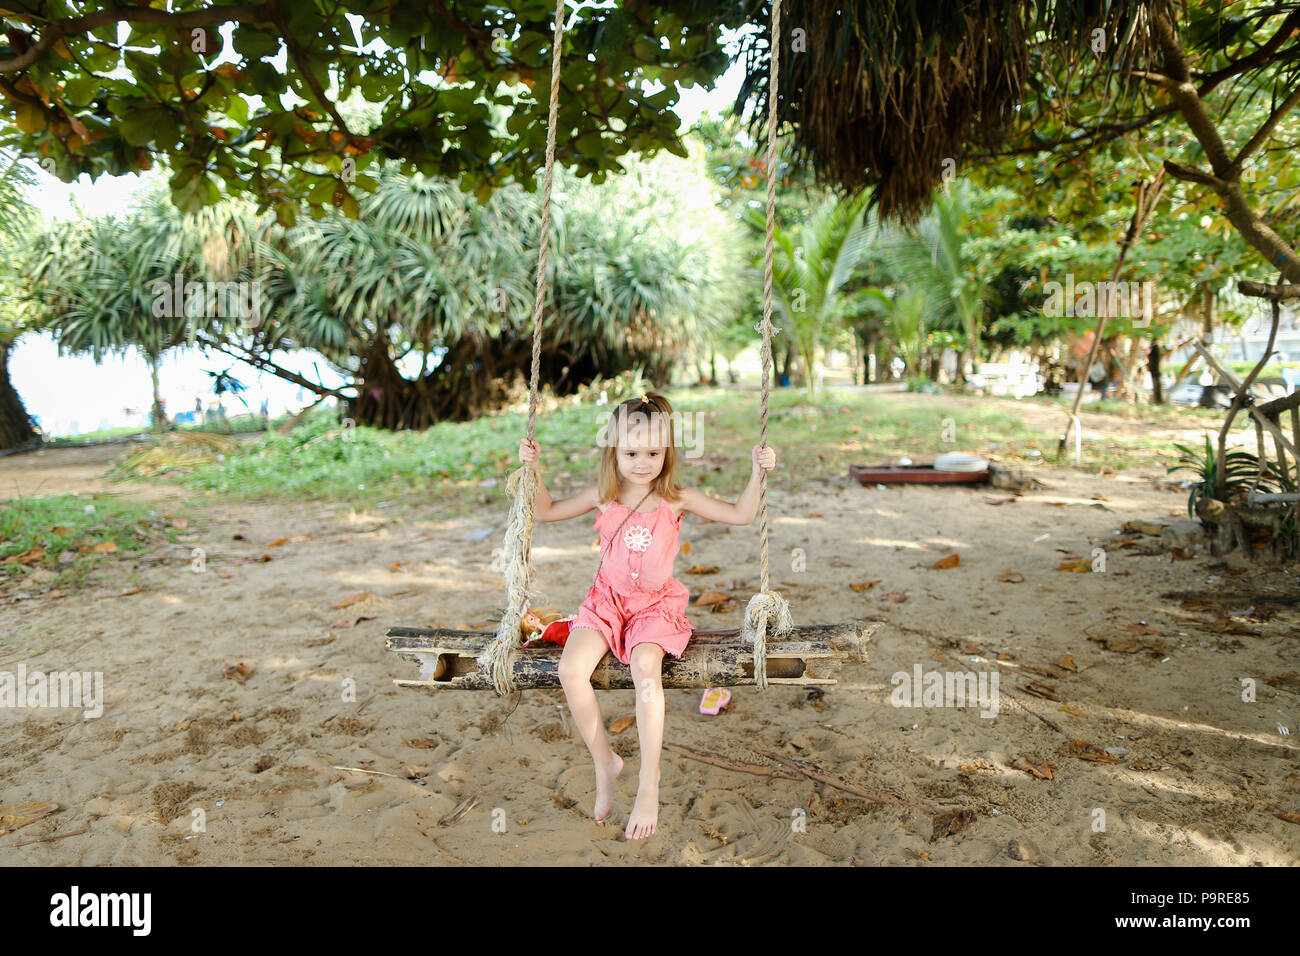 Little beautiful girl riding on swing on sand background, wearing pink dress. - Stock Image